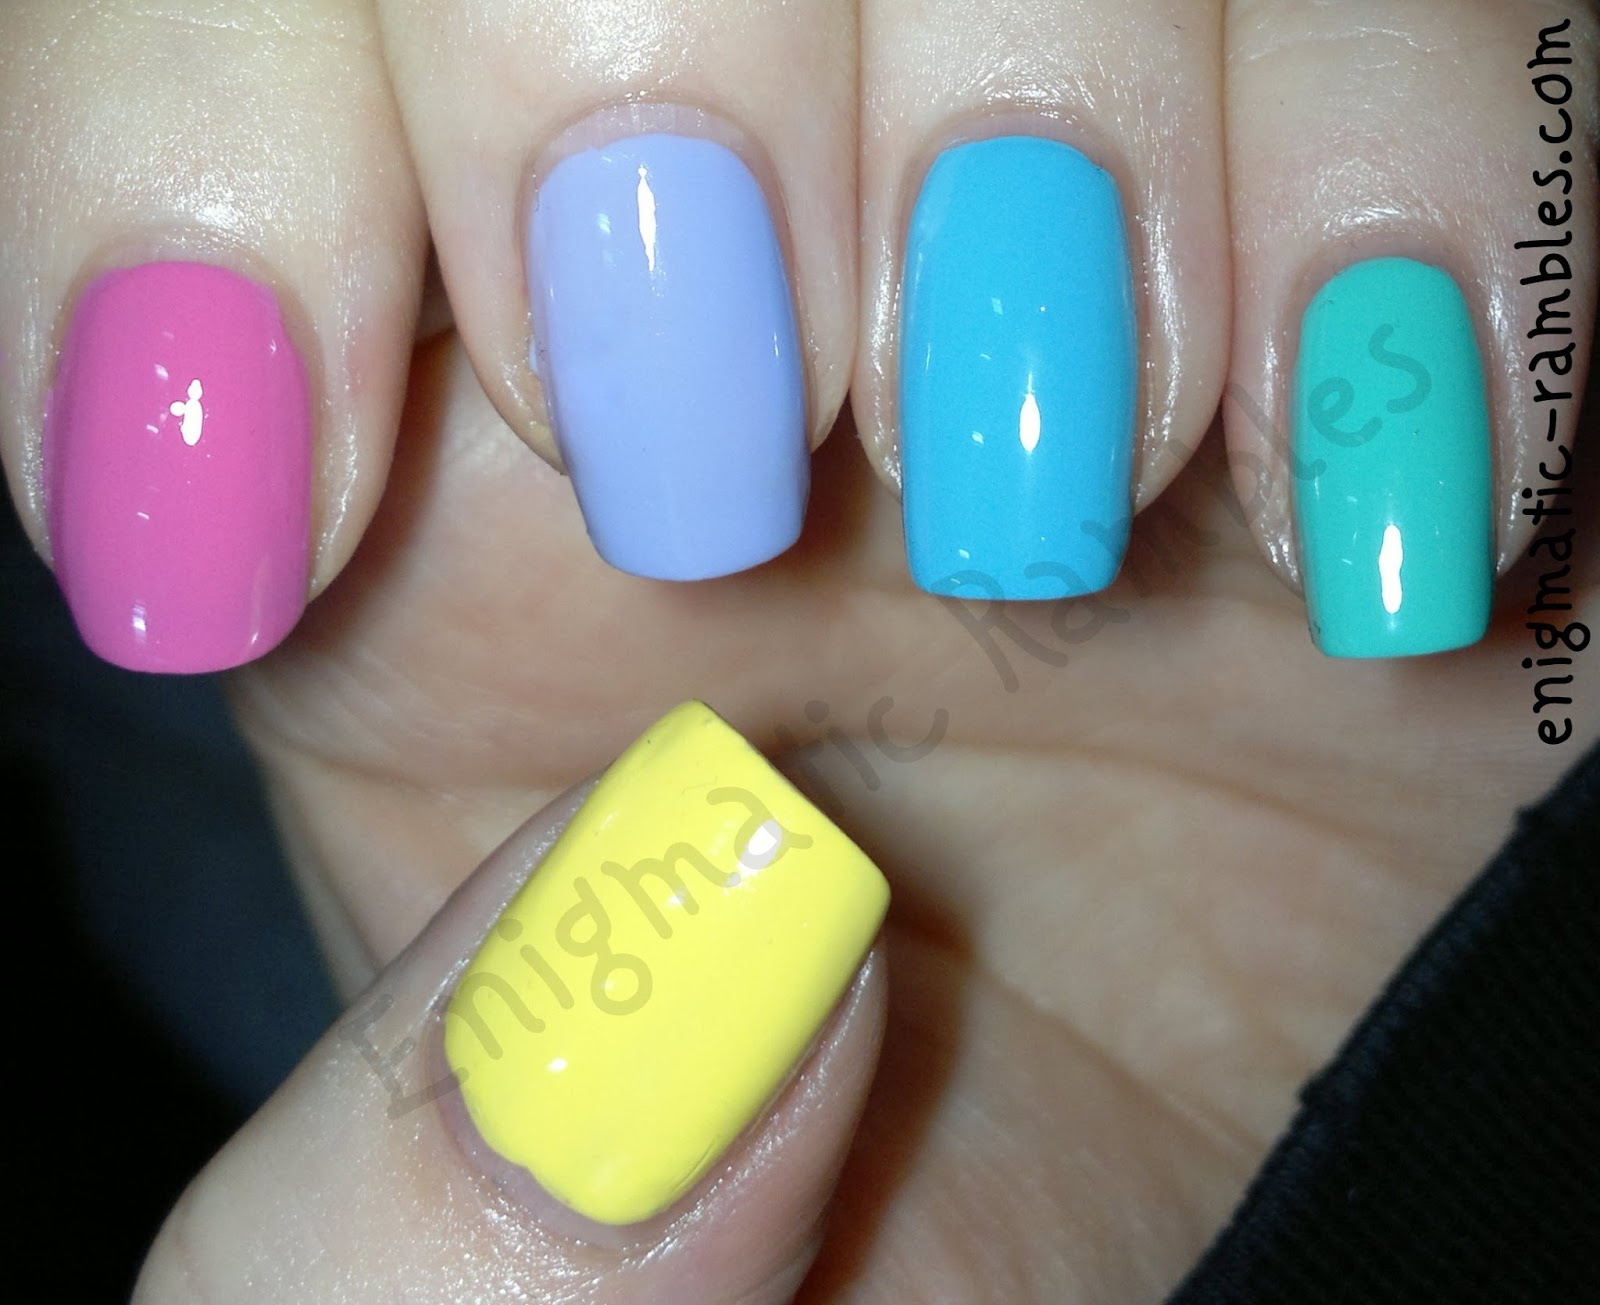 spring-2014-nail-polish-varnish-elf-eye-lips-face-yellow-models-own-pink-blush-barry-m-prickly-pear-greenberry-maybelline-cool-blue-skittle